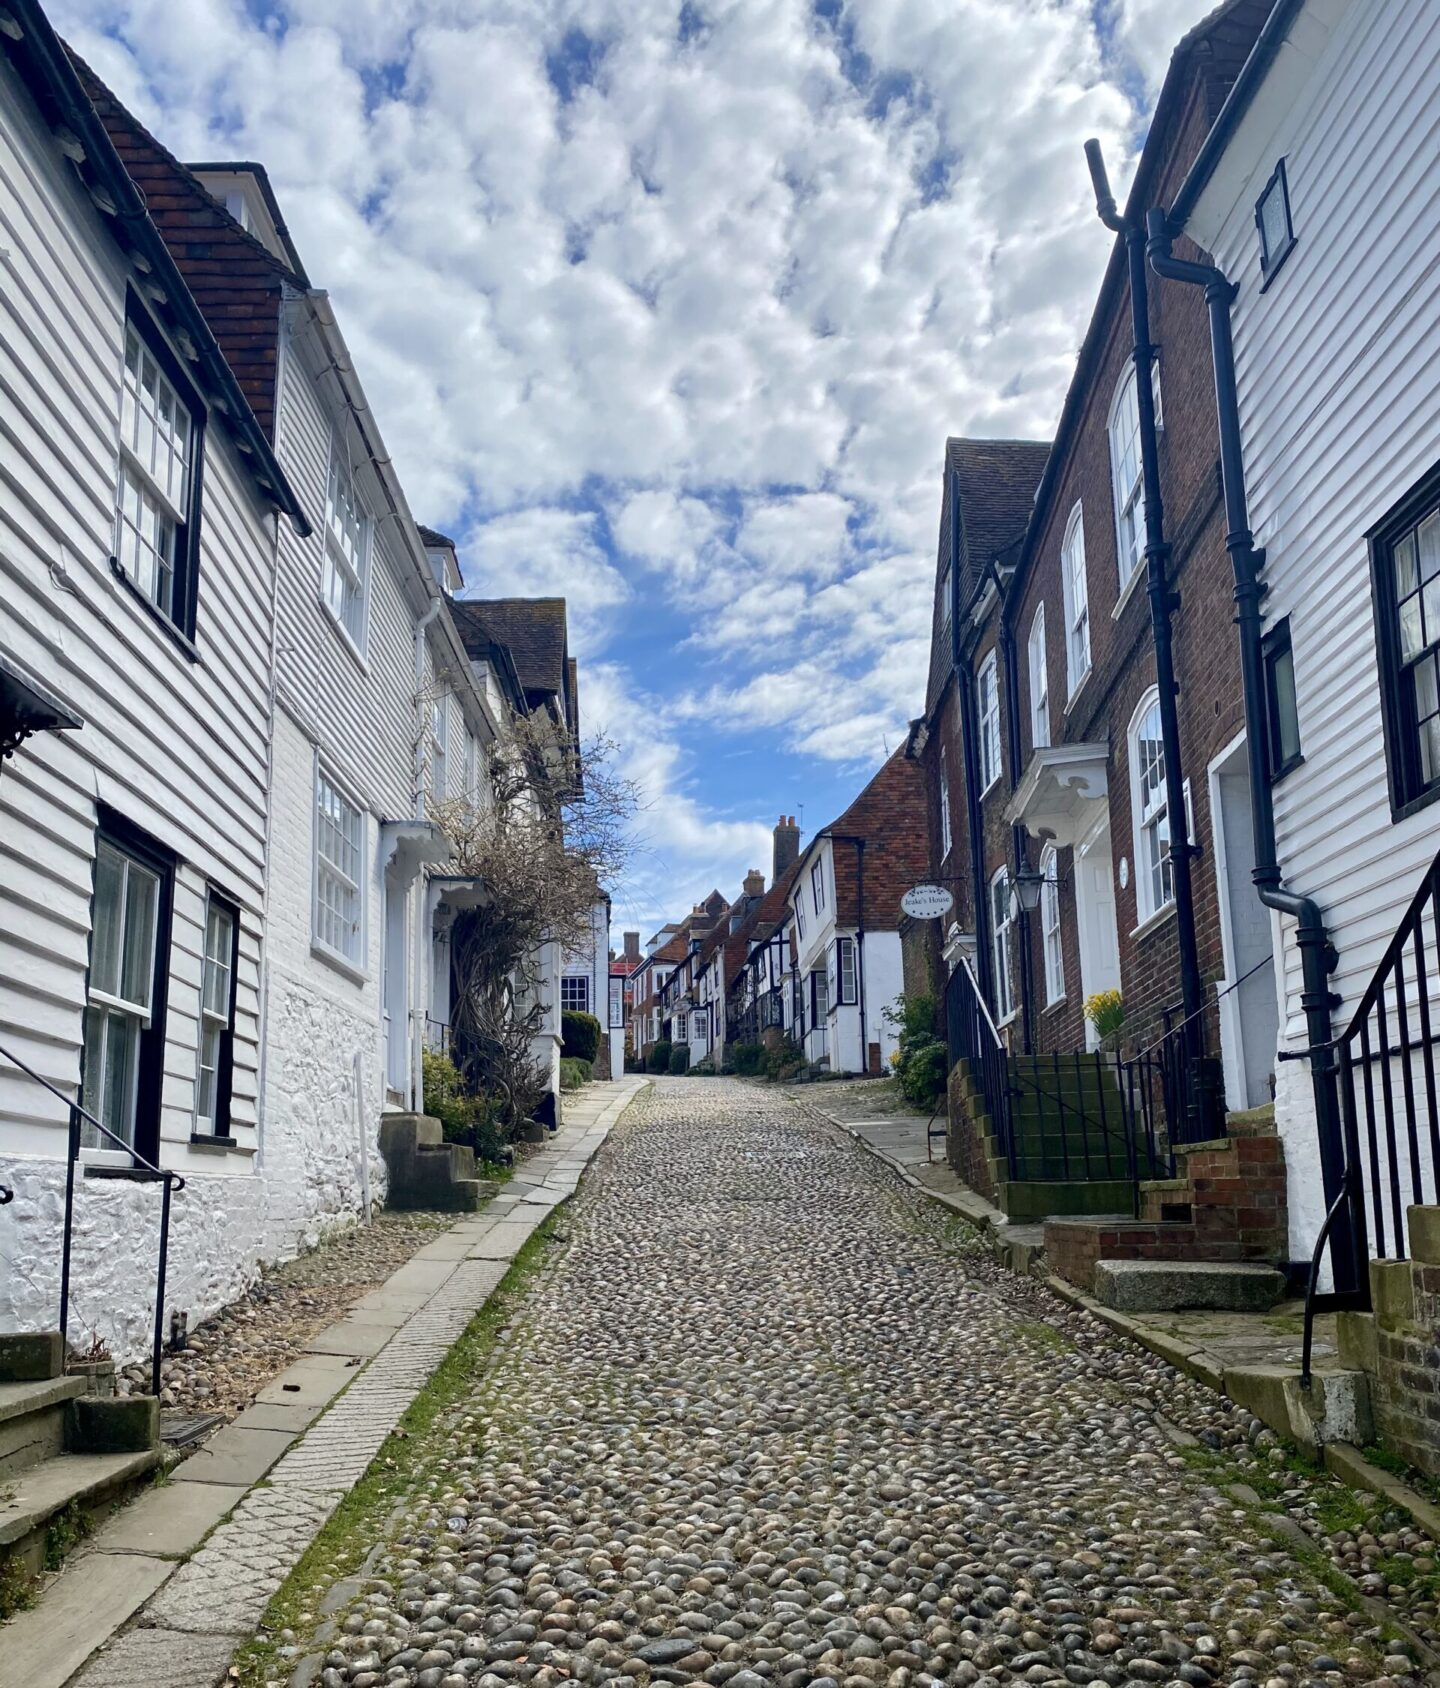 Battleaxe is platformed, and a trip to Rye